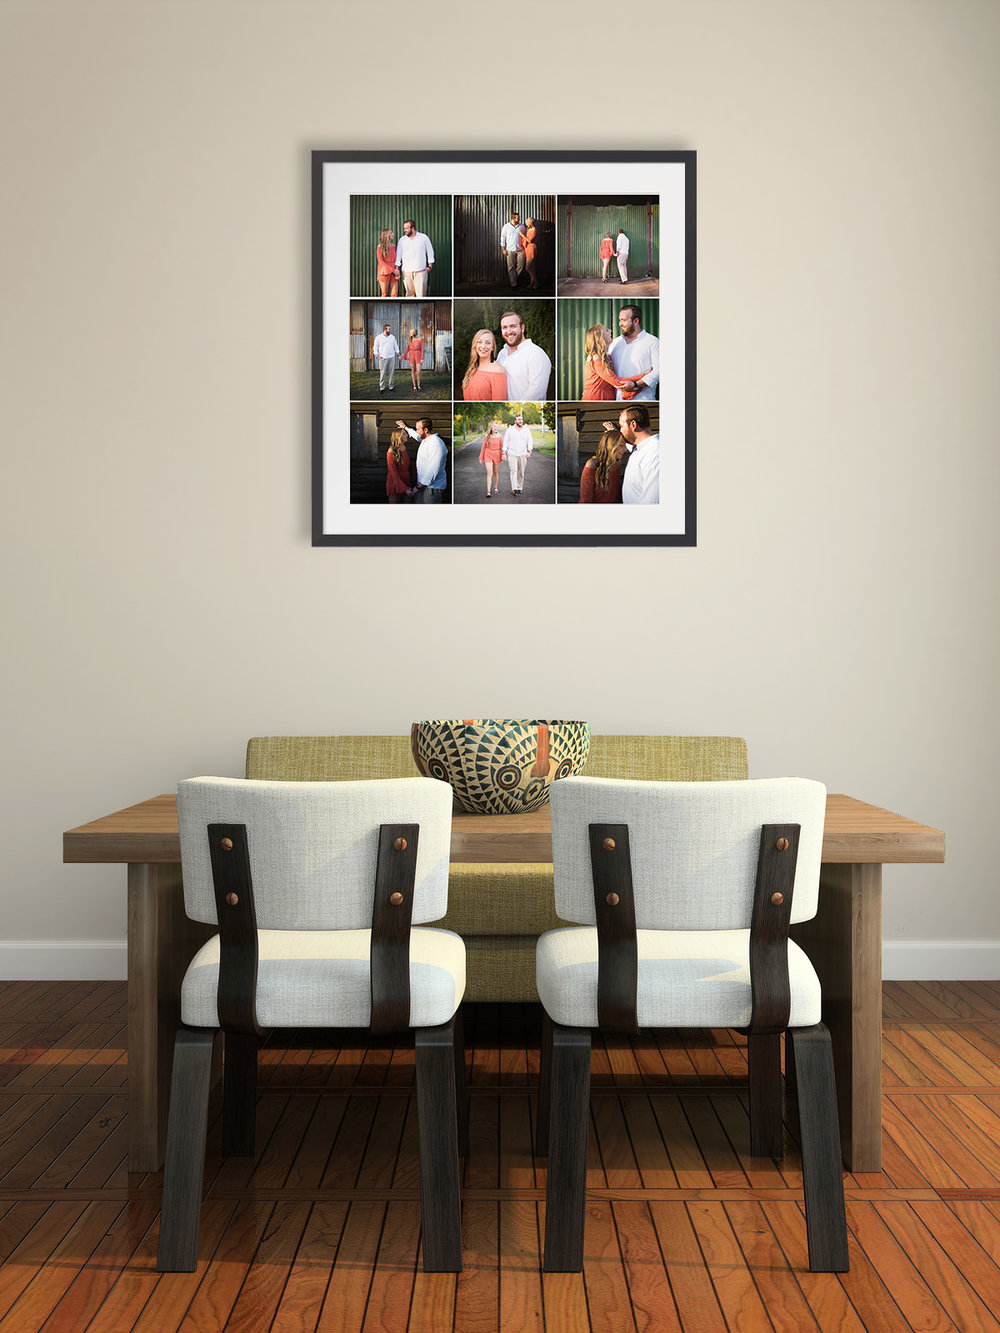 Grid of 9 engagement photos in square frame hanging above dining table